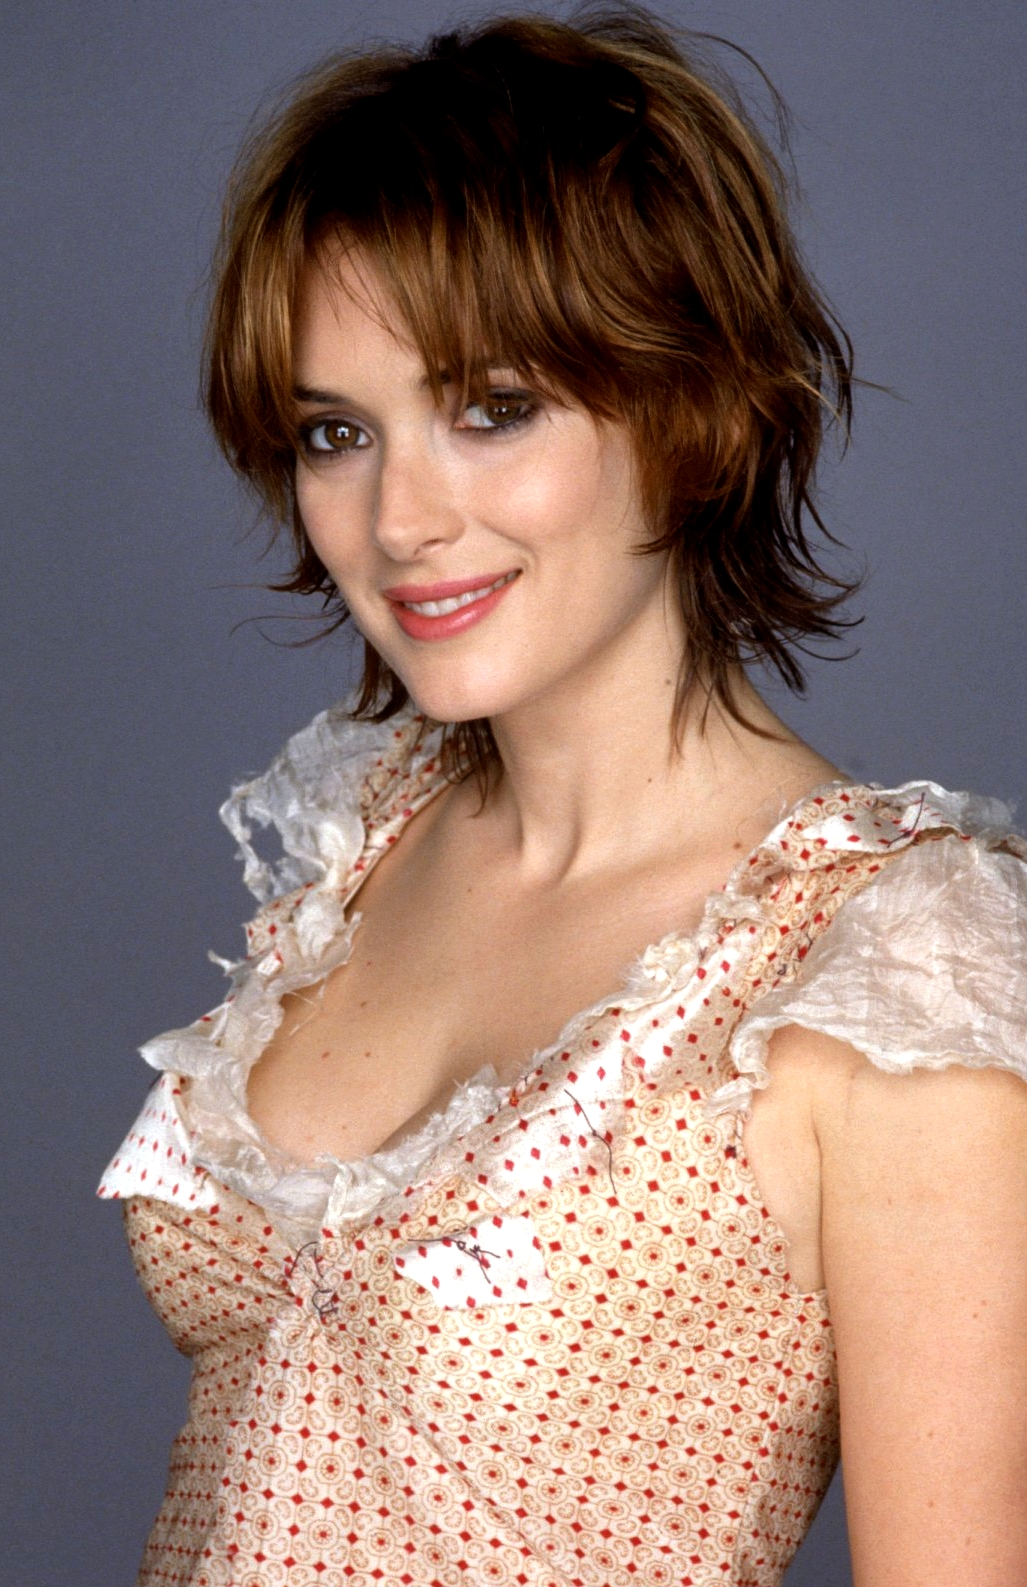 winona ryder reality biteswinona ryder 2016, winona ryder tumblr, winona ryder young, winona ryder 90s, winona ryder gif, winona ryder 1991, winona ryder pizza, winona ryder in night on earth, winona ryder movies, winona ryder reality bites, winona ryder alien, winona ryder 1990, winona ryder kinopoisk, winona ryder mom, winona ryder young style, winona ryder boyfriend, winona ryder has been afraid of, winona ryder telegram, winona ryder icloud, winona ryder face